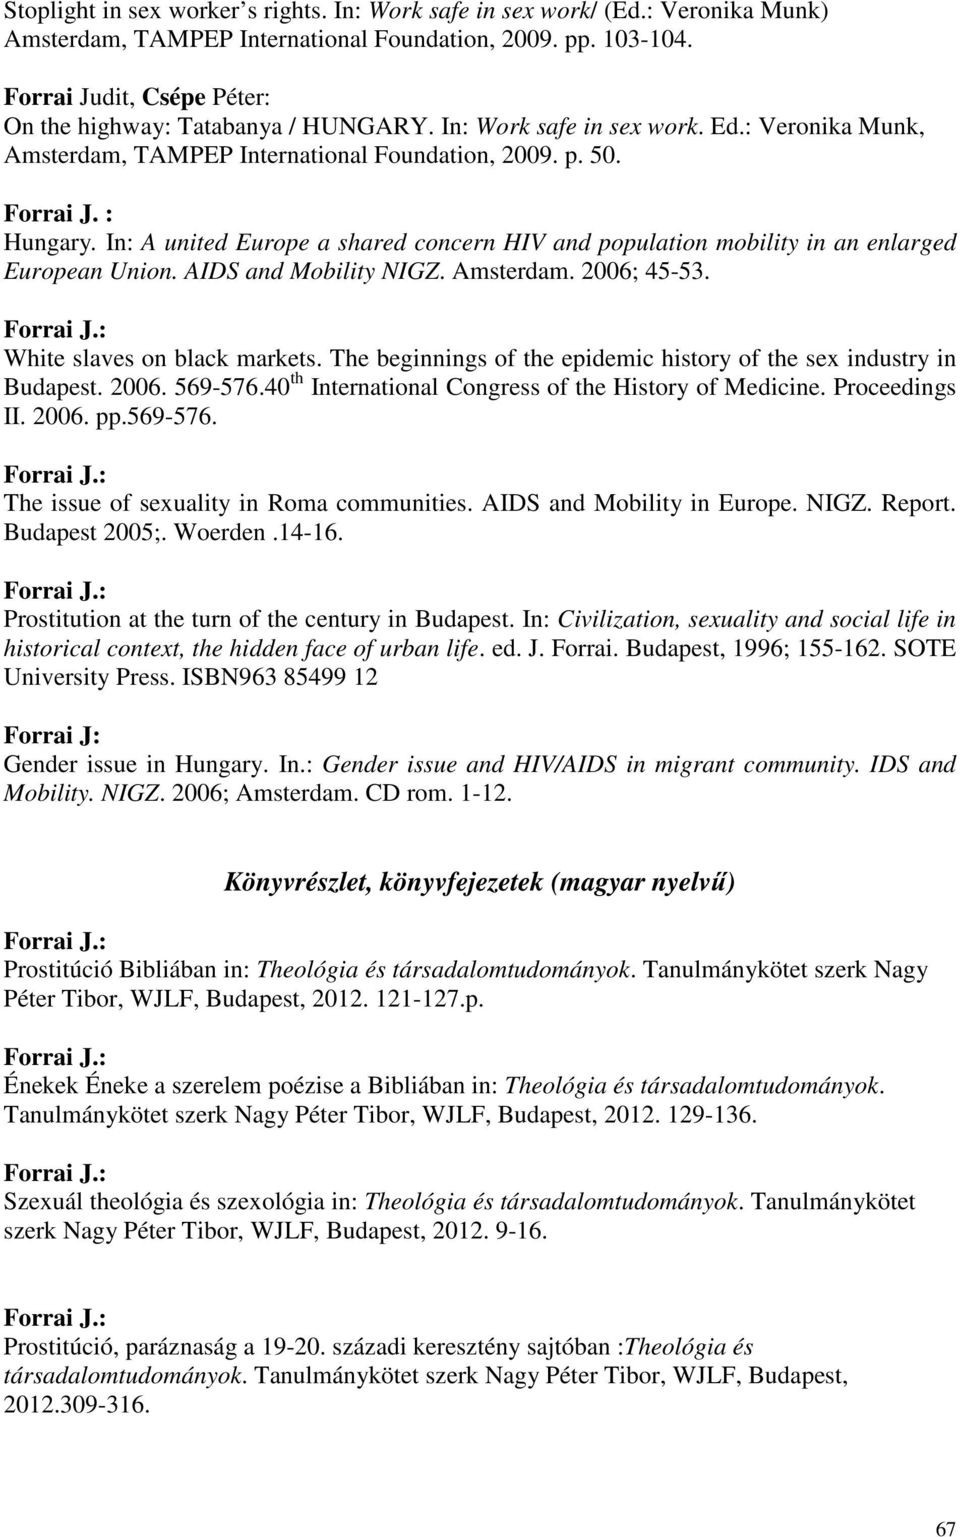 In: A united Europe a shared concern HIV and population mobility in an enlarged European Union. AIDS and Mobility NIGZ. Amsterdam. 2006; 45-53. White slaves on black markets.